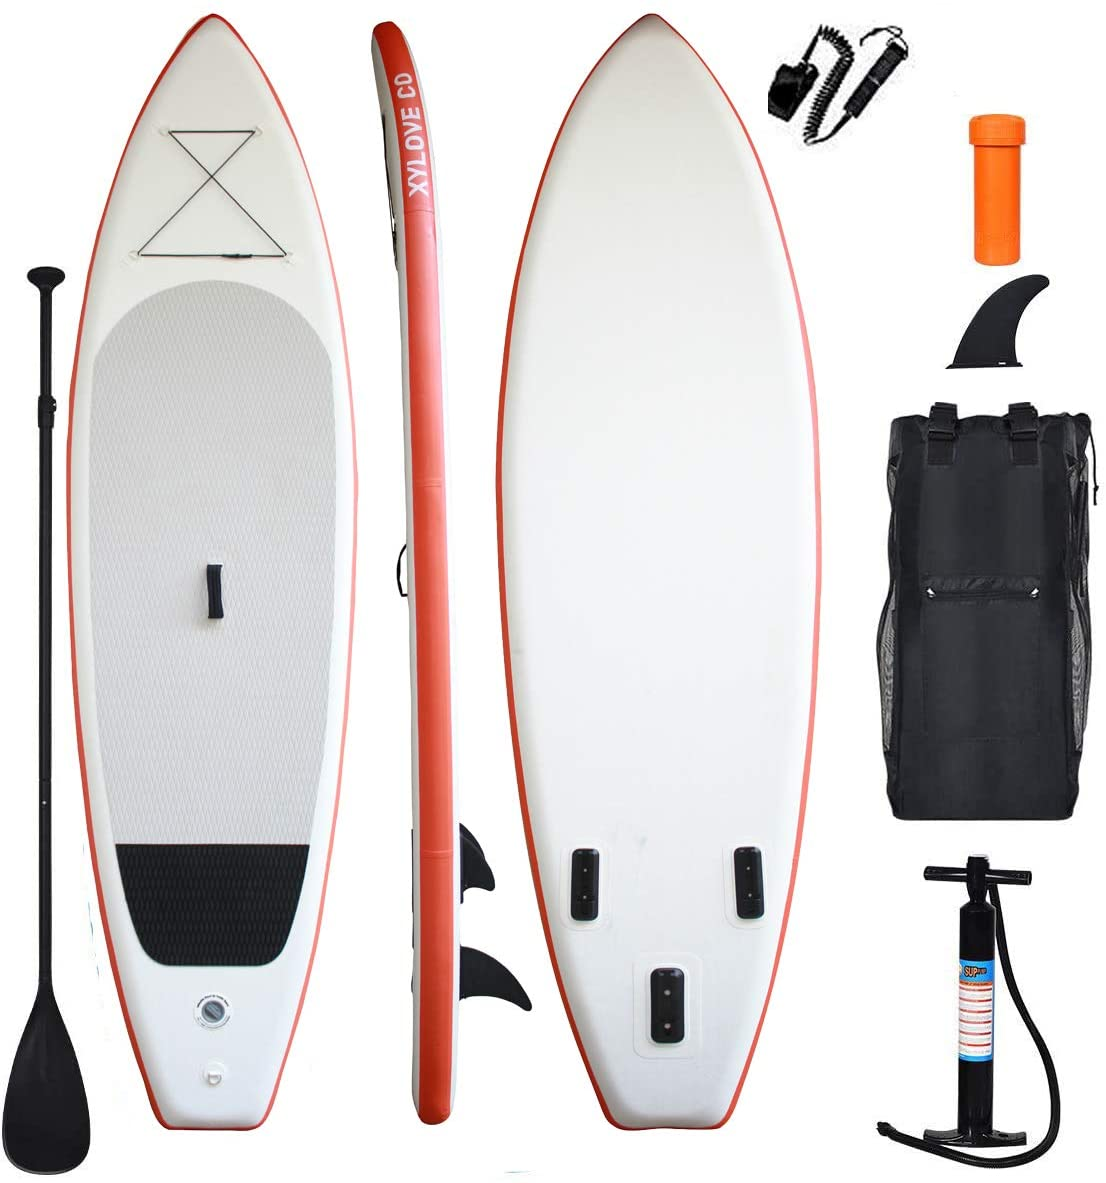 Xylove Paddle Board Review